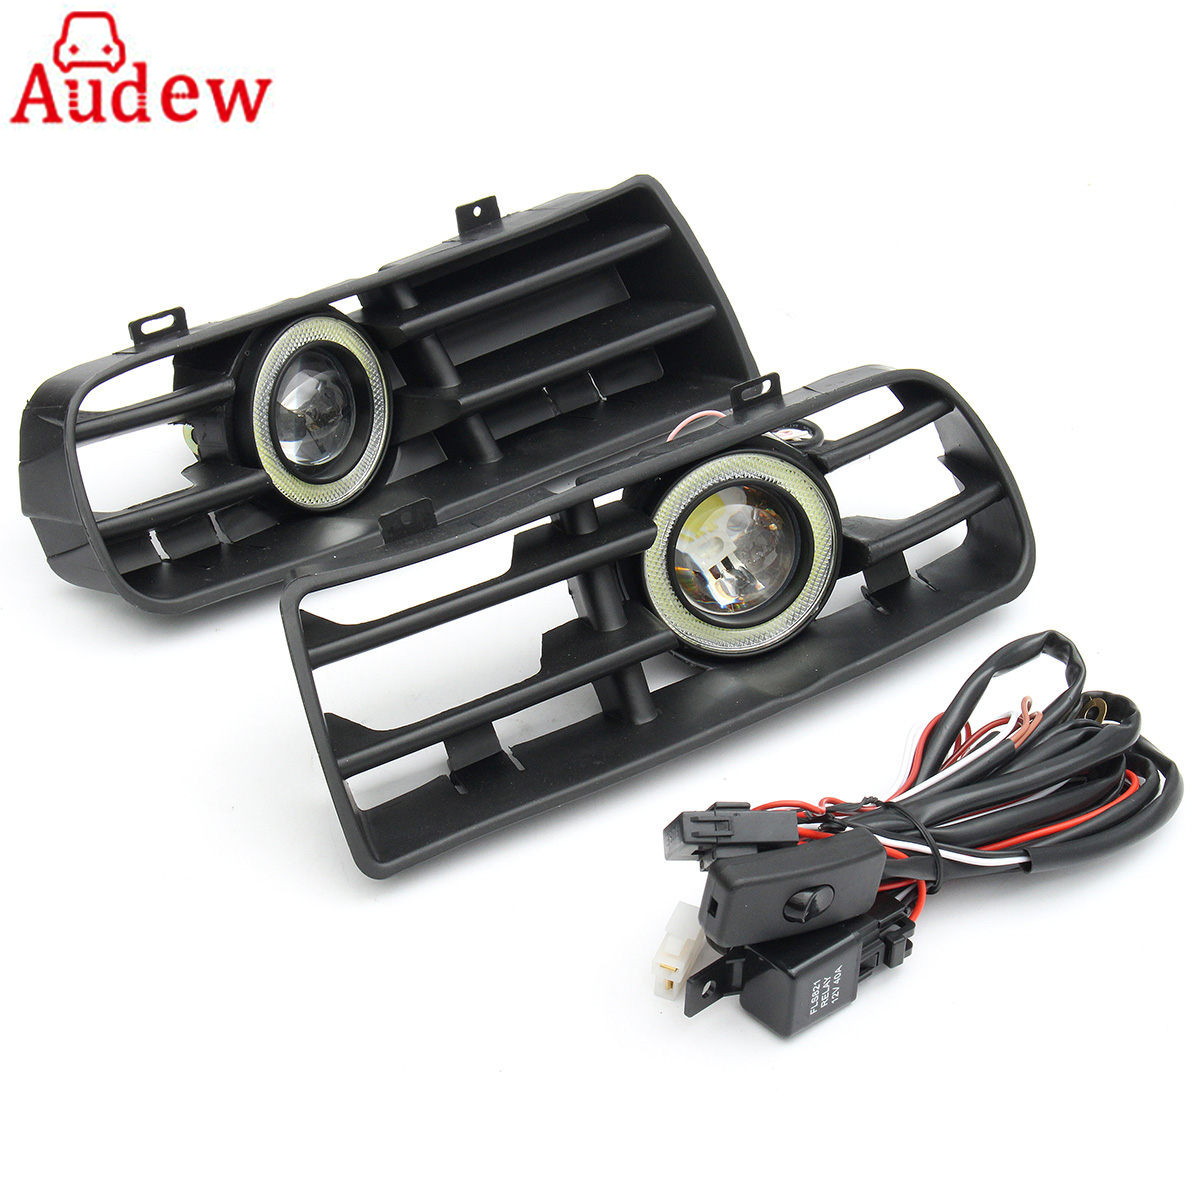 1Pair LED Fog Lights Angel Eyes Lamp Car Front Bumper Grille Grill Cover With Wire Kit For VW Golf MK4 98-04 for vw golf gti tdi r32 mk4 1998 2004 front bumper grill with led angel eyes fog lights switch wiring kit 9443